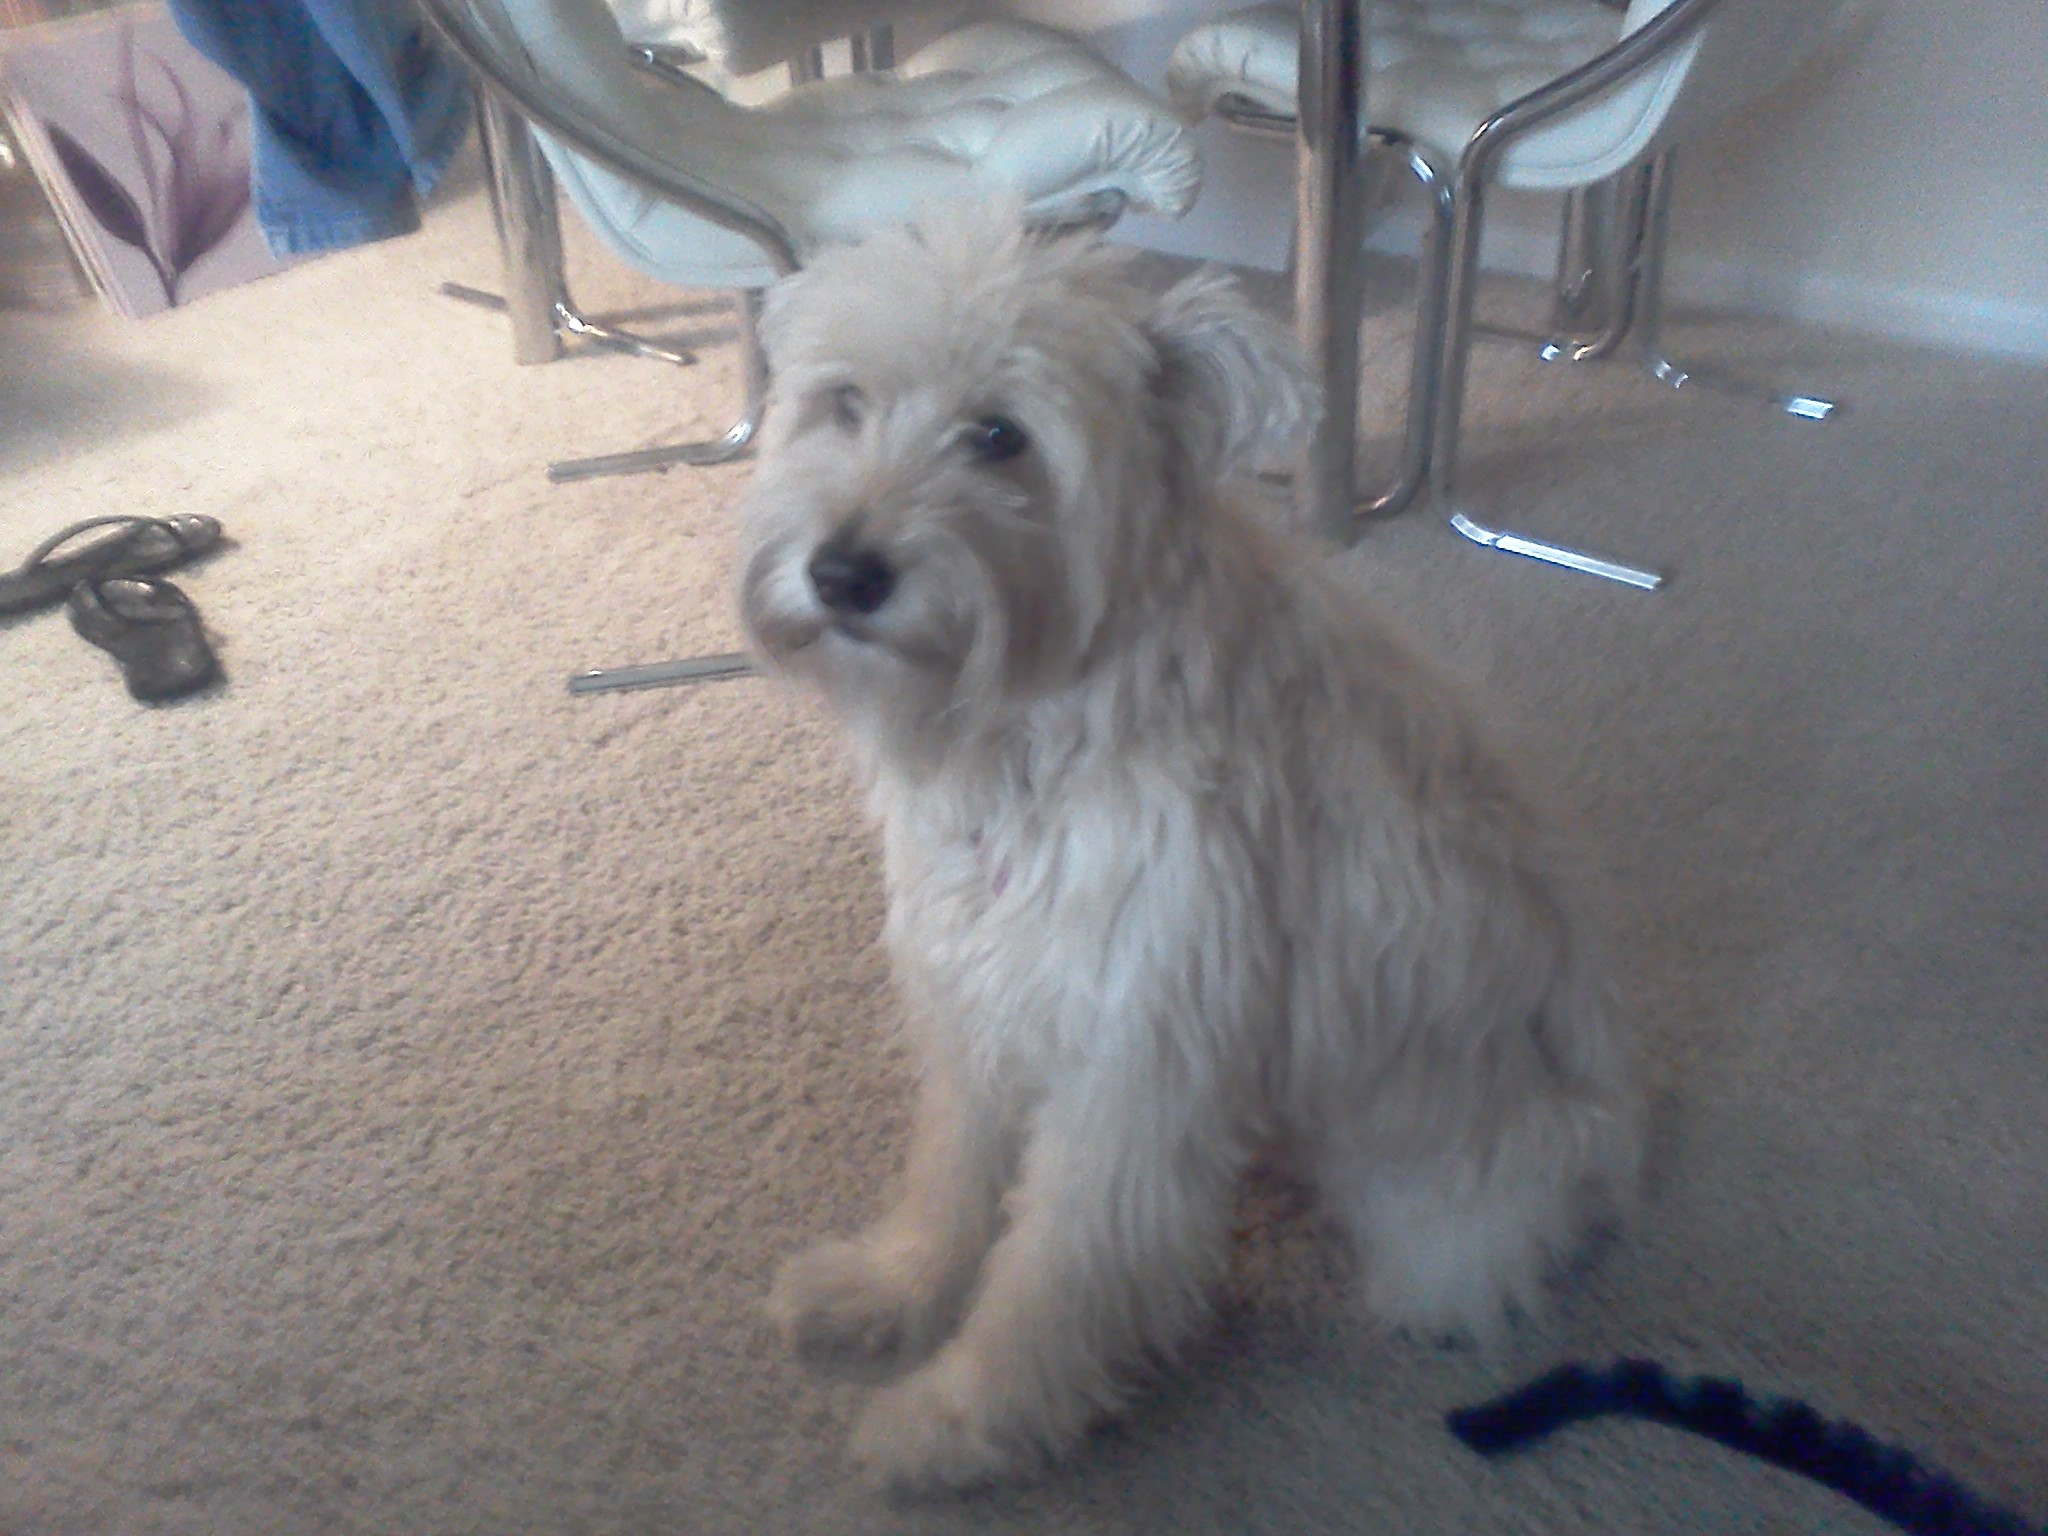 Witching In Search A Young Wheaten Terrier To Adopt Wheaten Terrier Mix Puppies Wheaten Terrier Mix Breeds Search A Young Wheaten Terrier To bark post Wheaten Terrier Mix